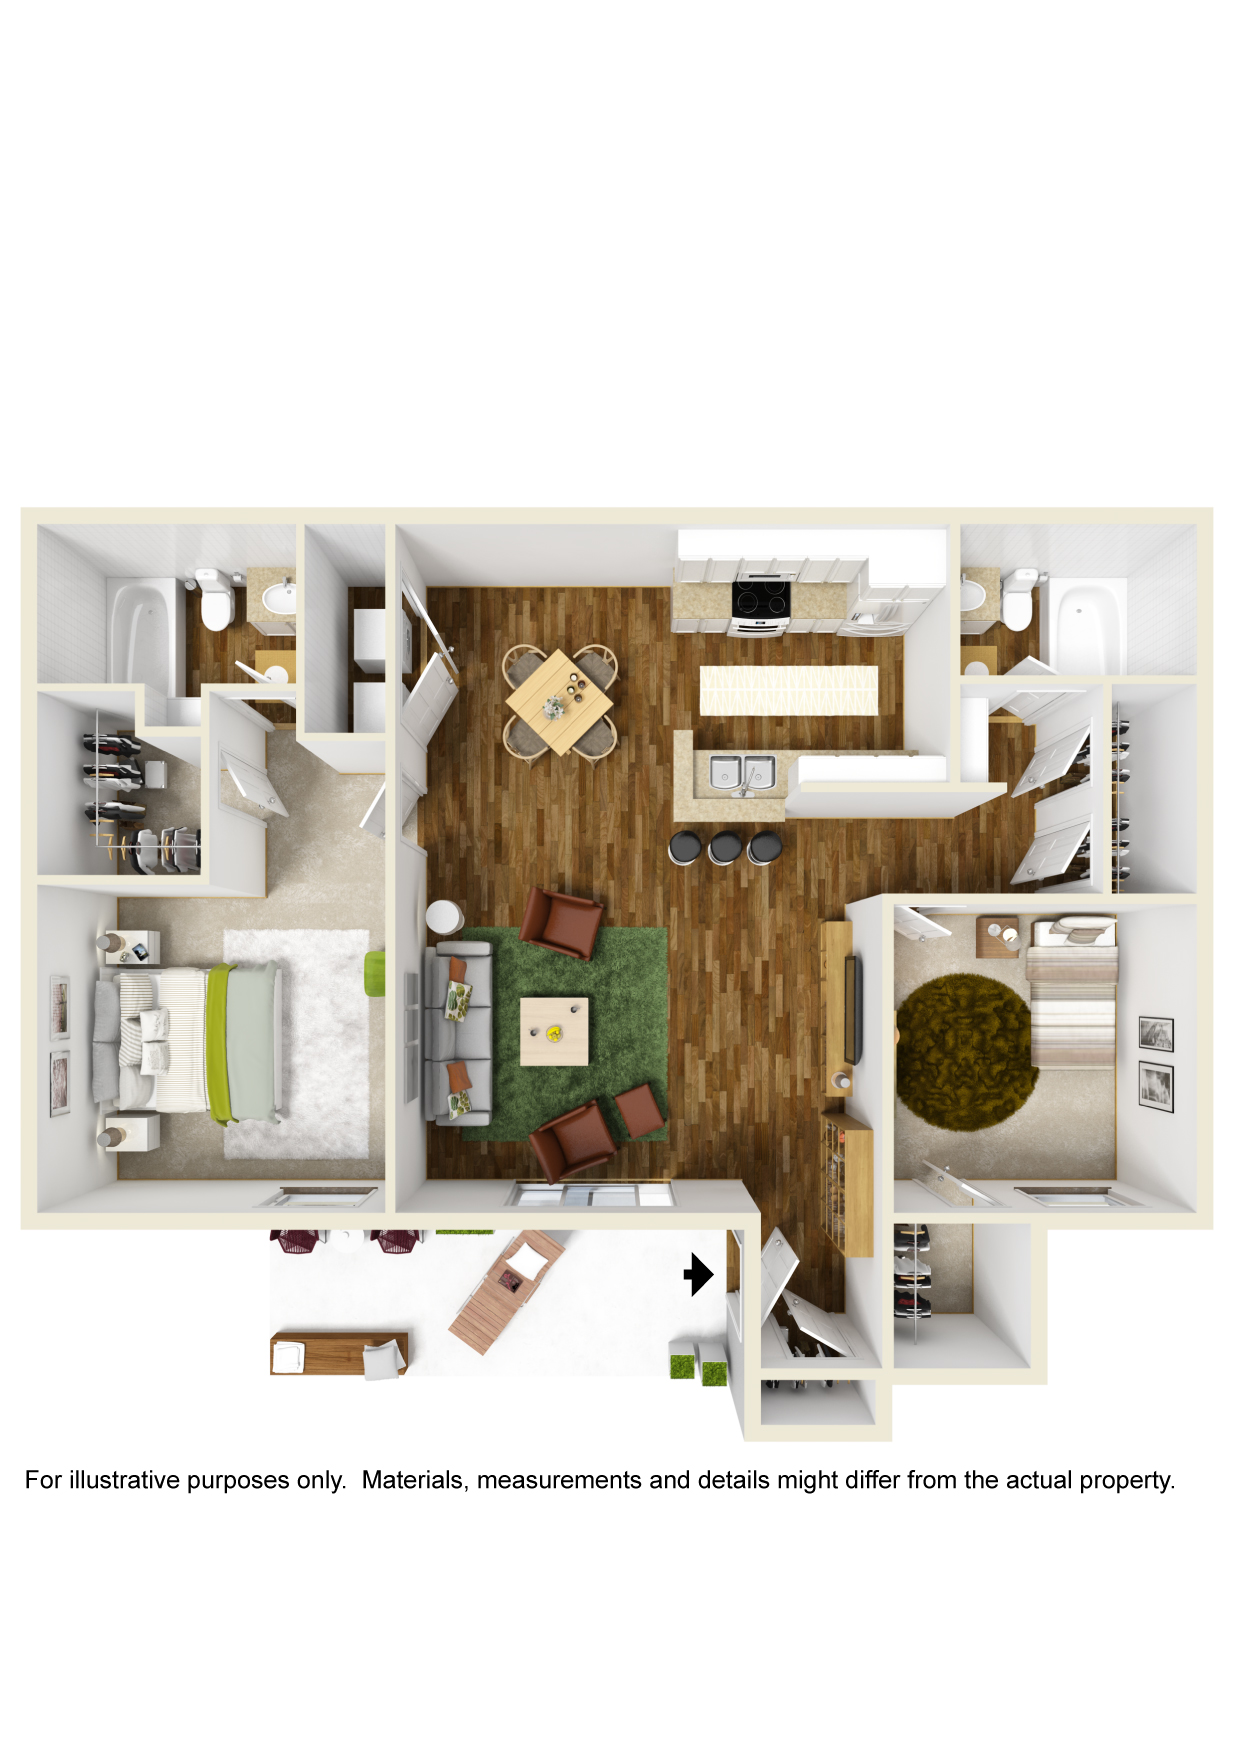 Highland Crossing Apartments - Floorplan - Unit B2